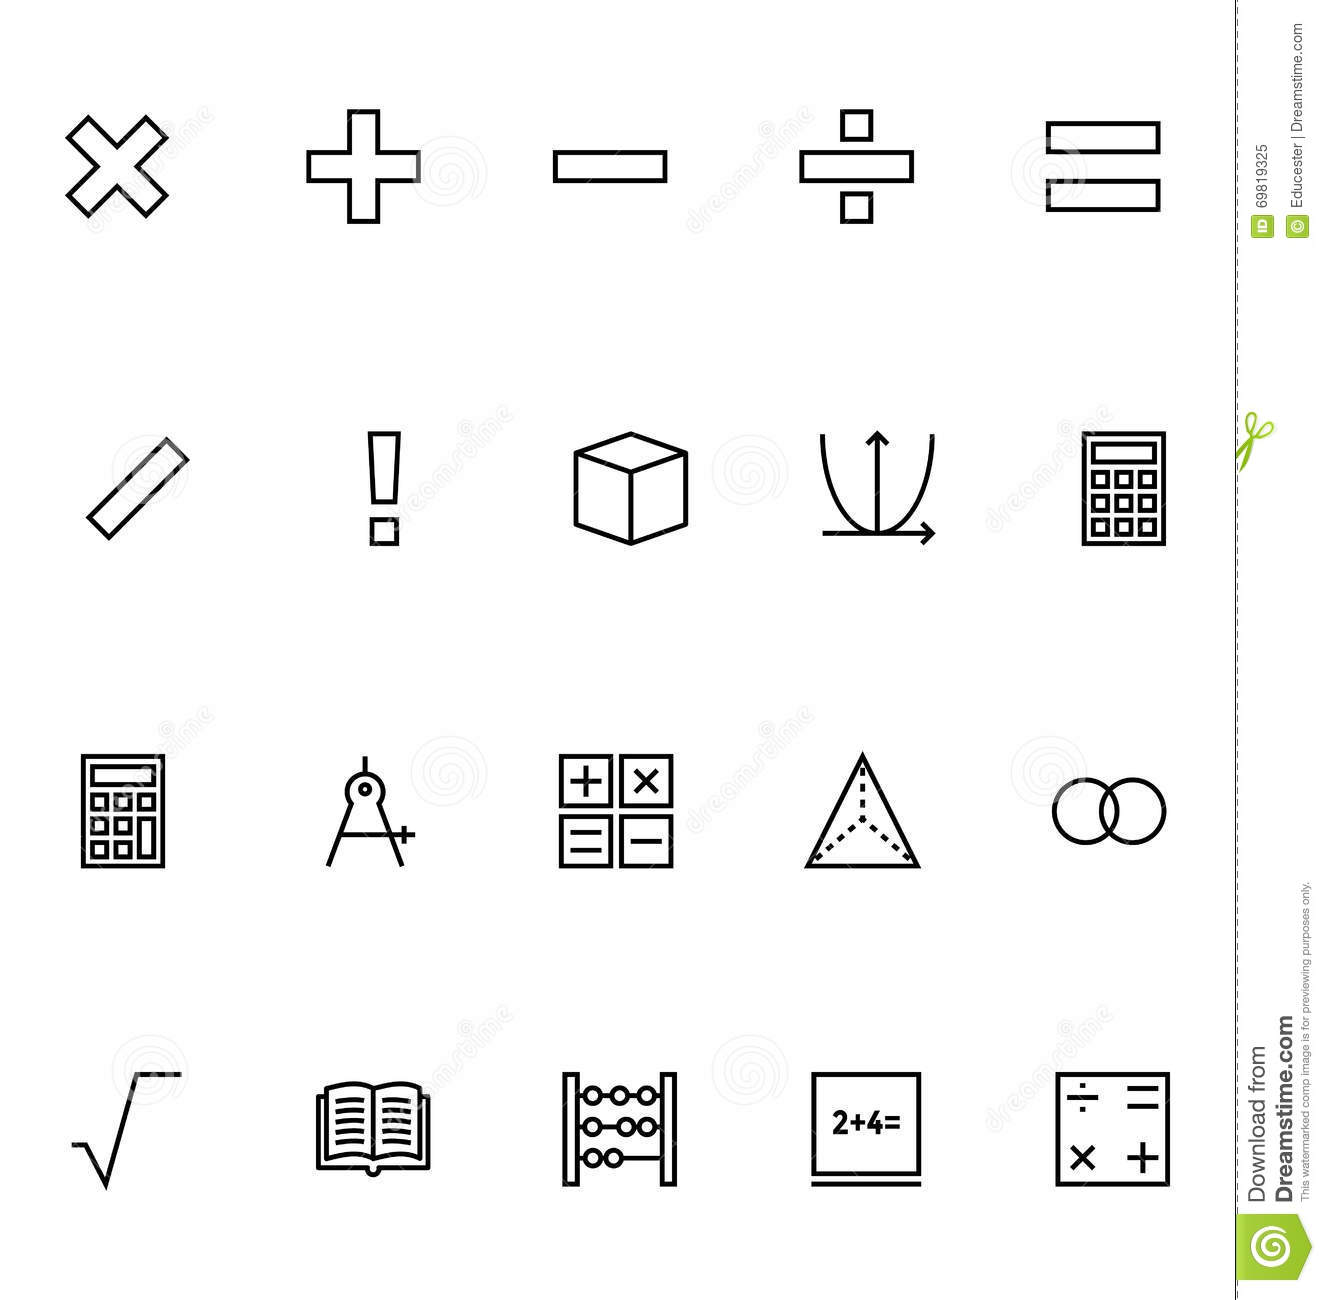 Division math stock images download 607 photos mathematics vector icons 1 here is a useful and trendy mathematics icon pack hope buycottarizona Image collections